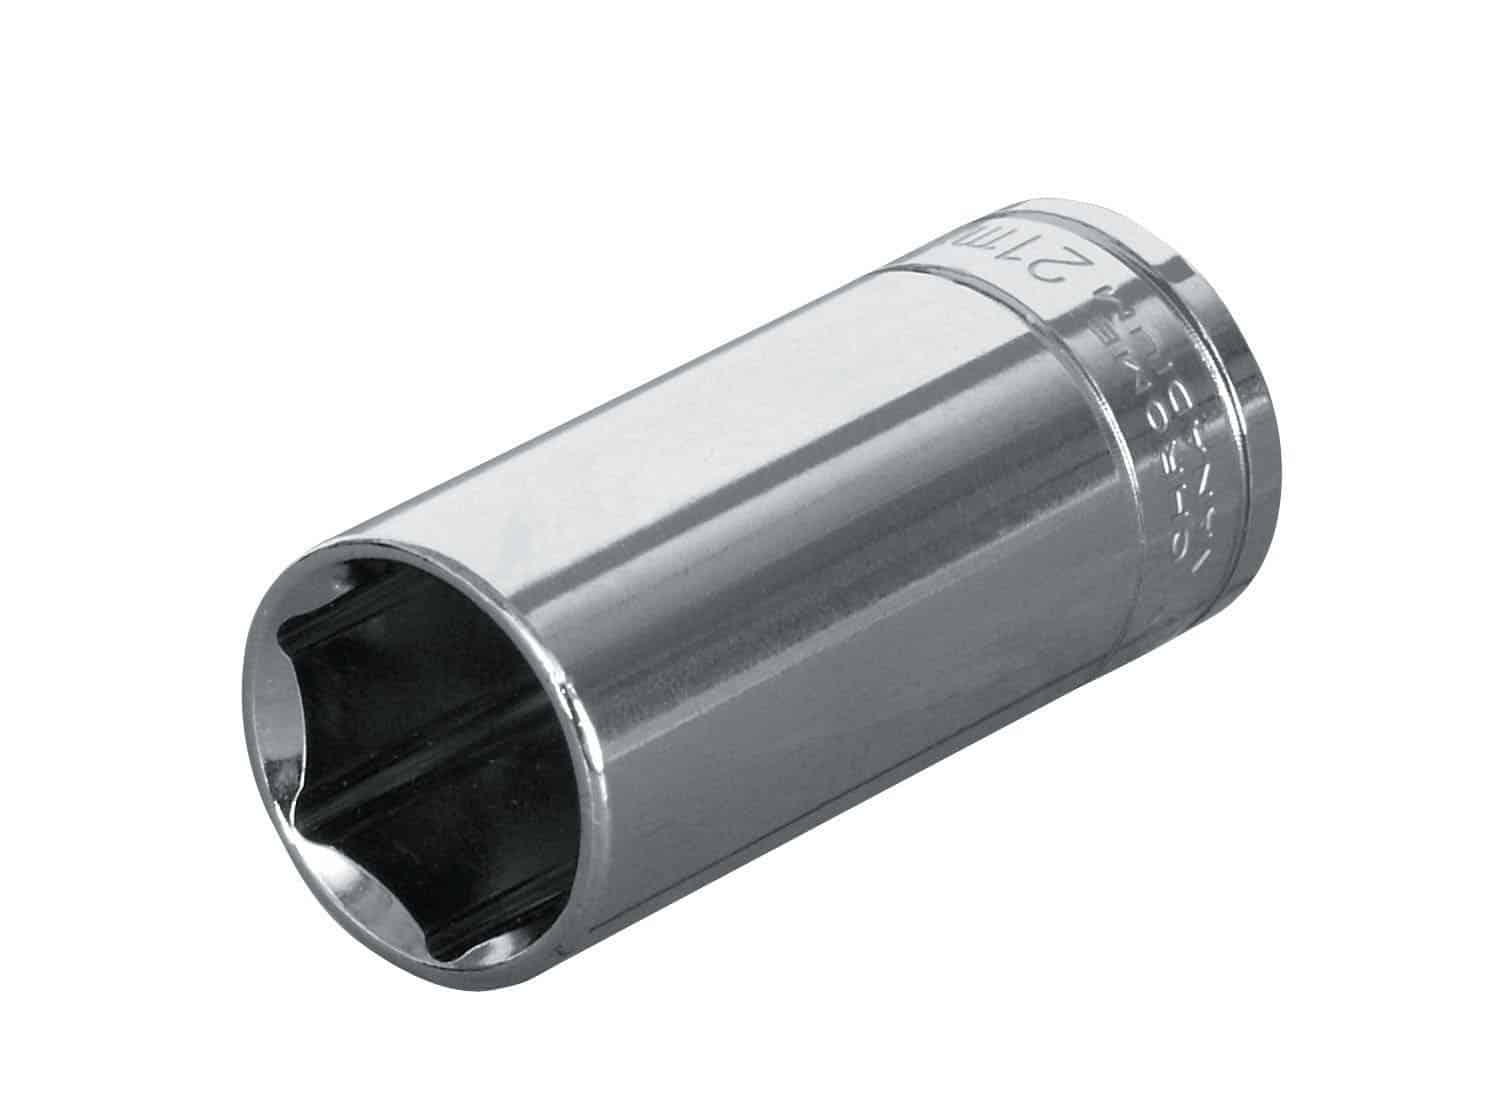 EXPERT E030219 - 1/4in Dr. Deep Socket 12Pt 9mm